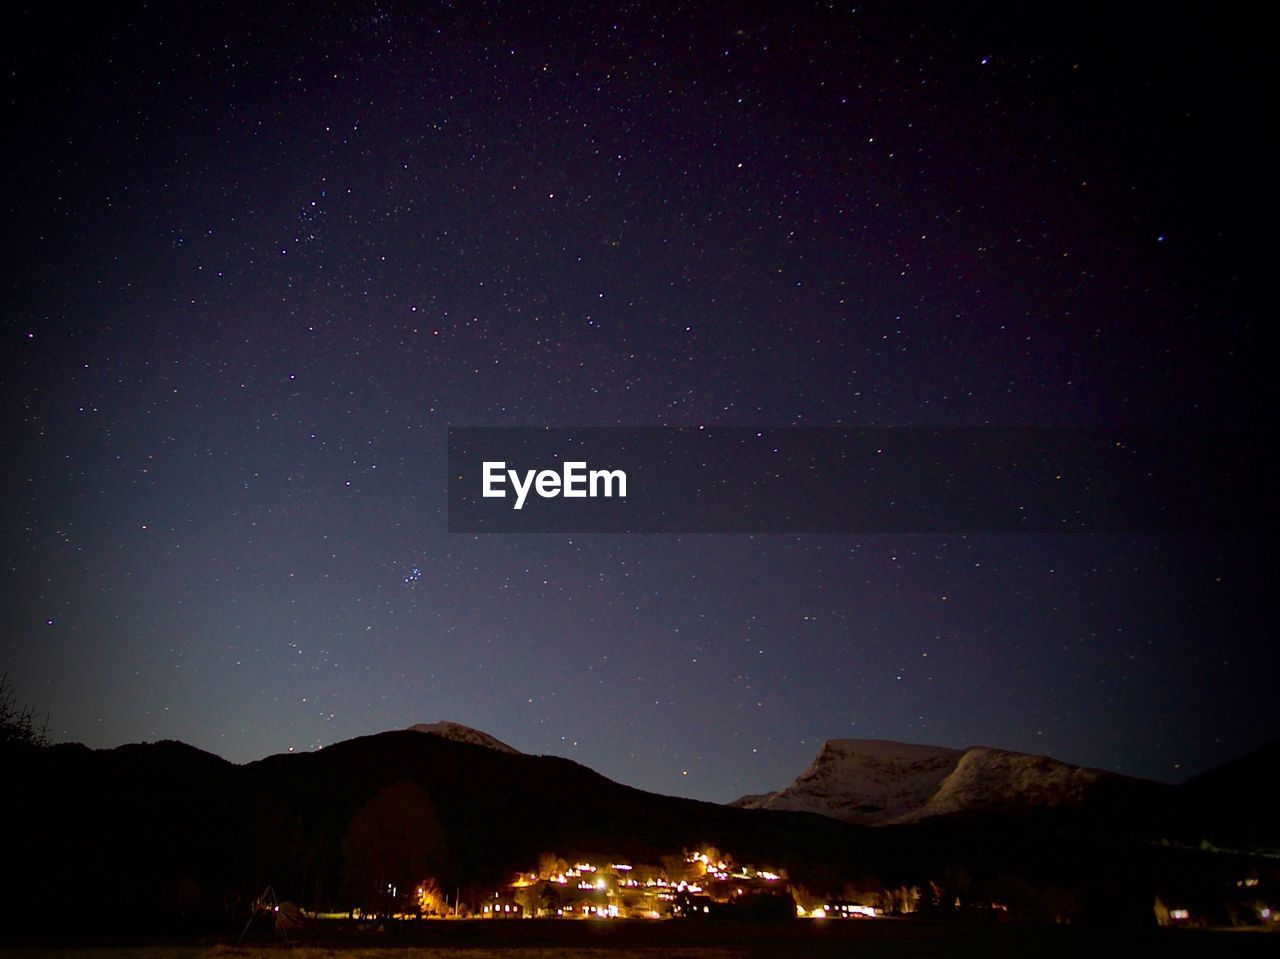 SCENIC VIEW OF ILLUMINATED MOUNTAINS AGAINST STAR FIELD